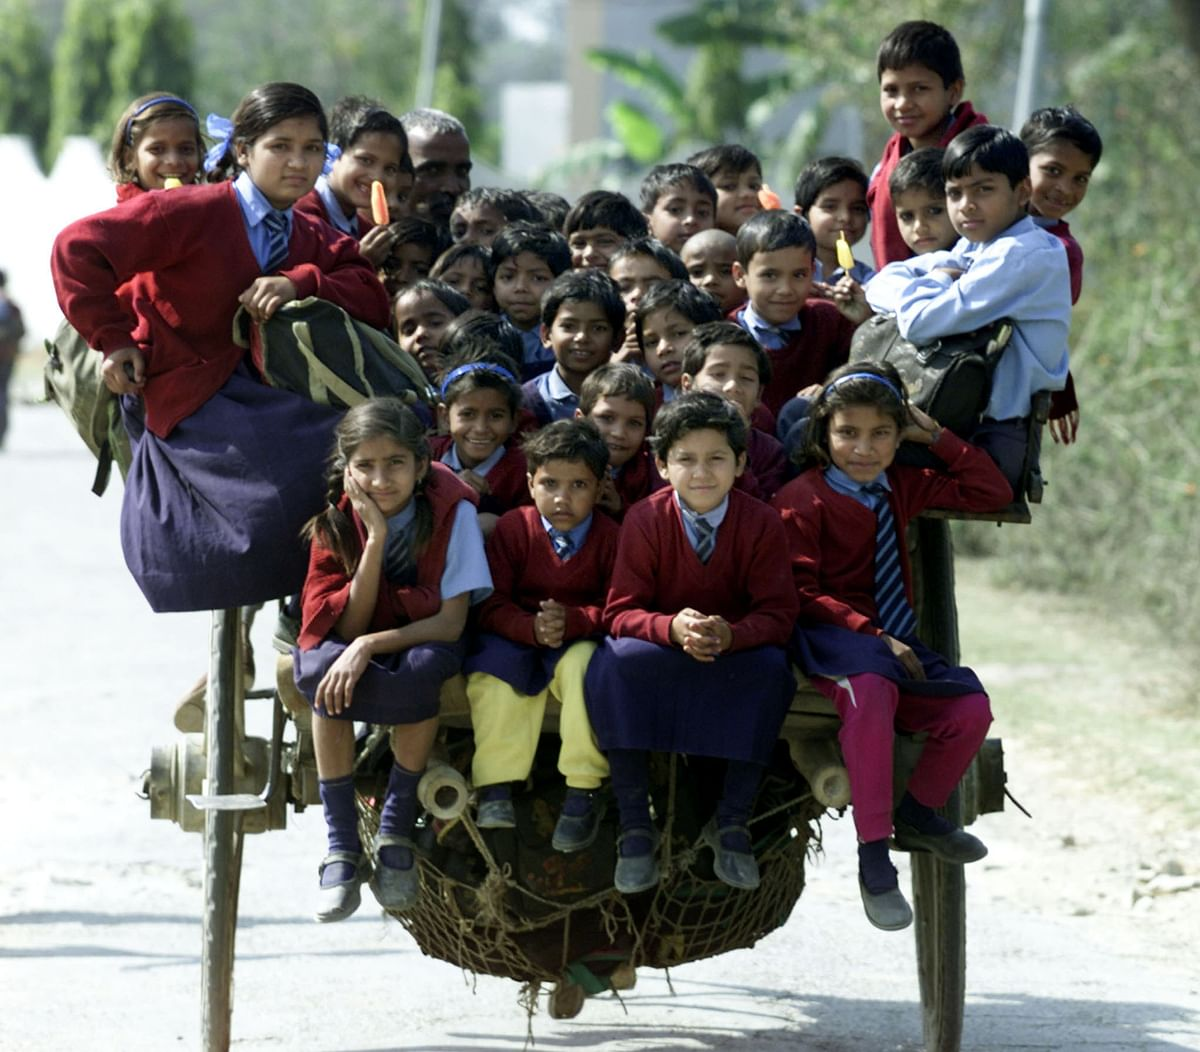 Delhi has only 1.25 lakh seats to offer for 1.5 lakh children seeking admission to entry level classes. (Photo: Reuters)